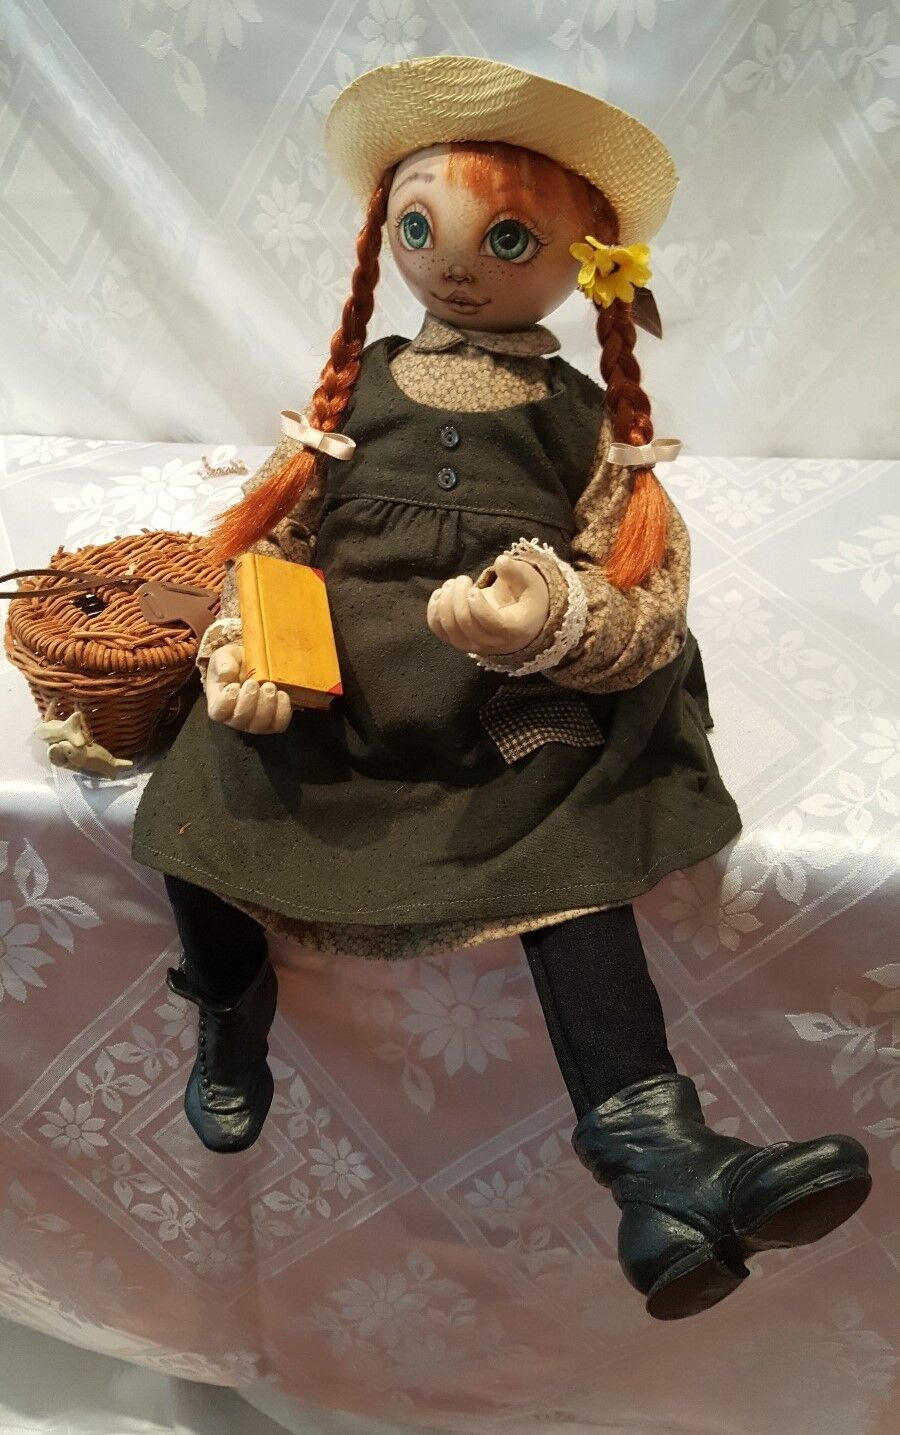 Reuge Music Xenis Exquisite Hand Painted Musical Doll